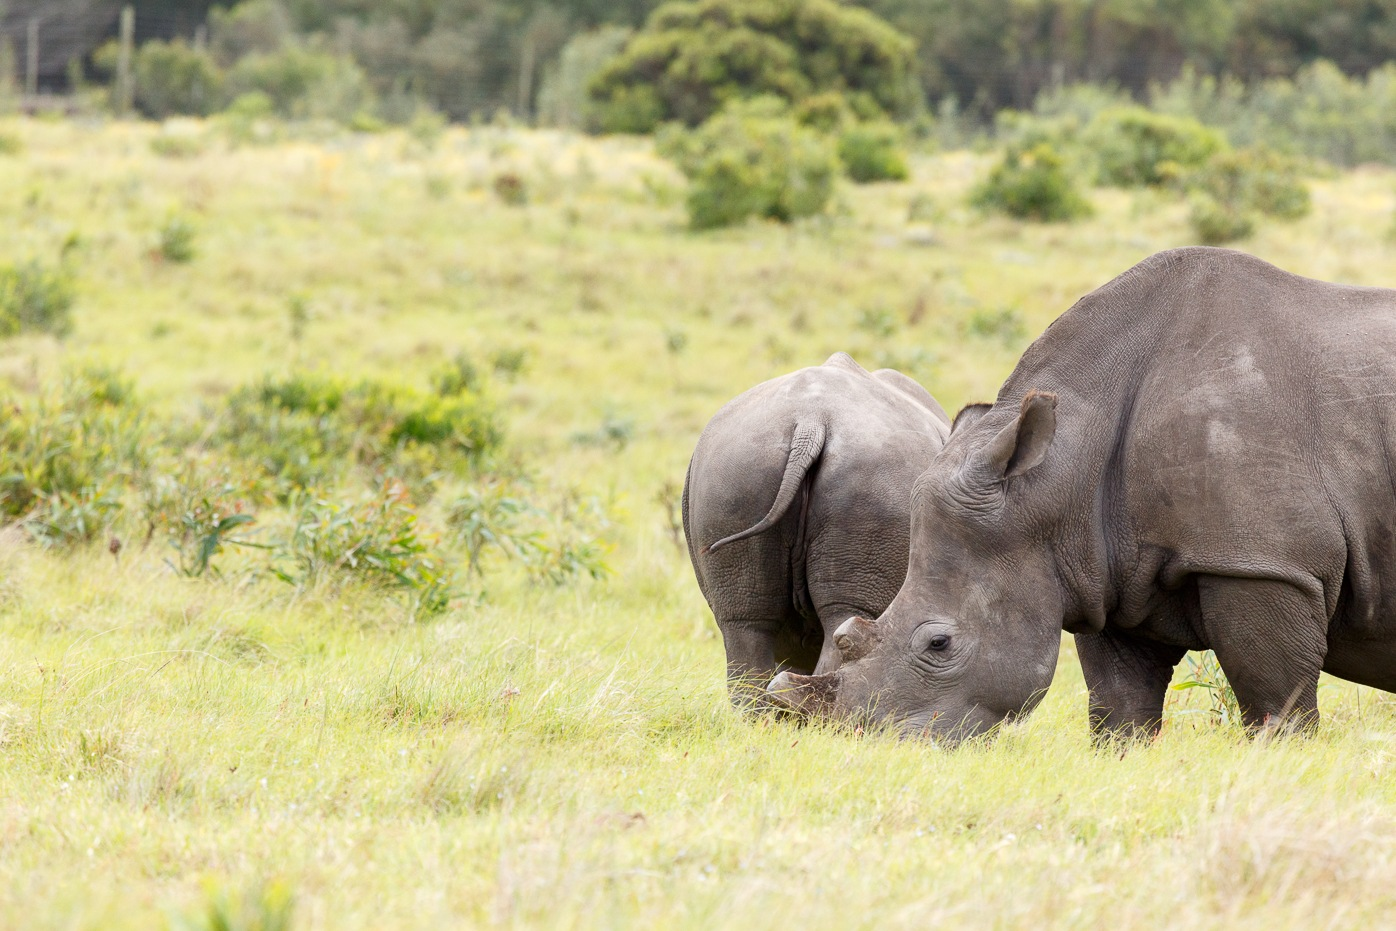 Rhino standing close to her baby by Charissa de Scande Lotter